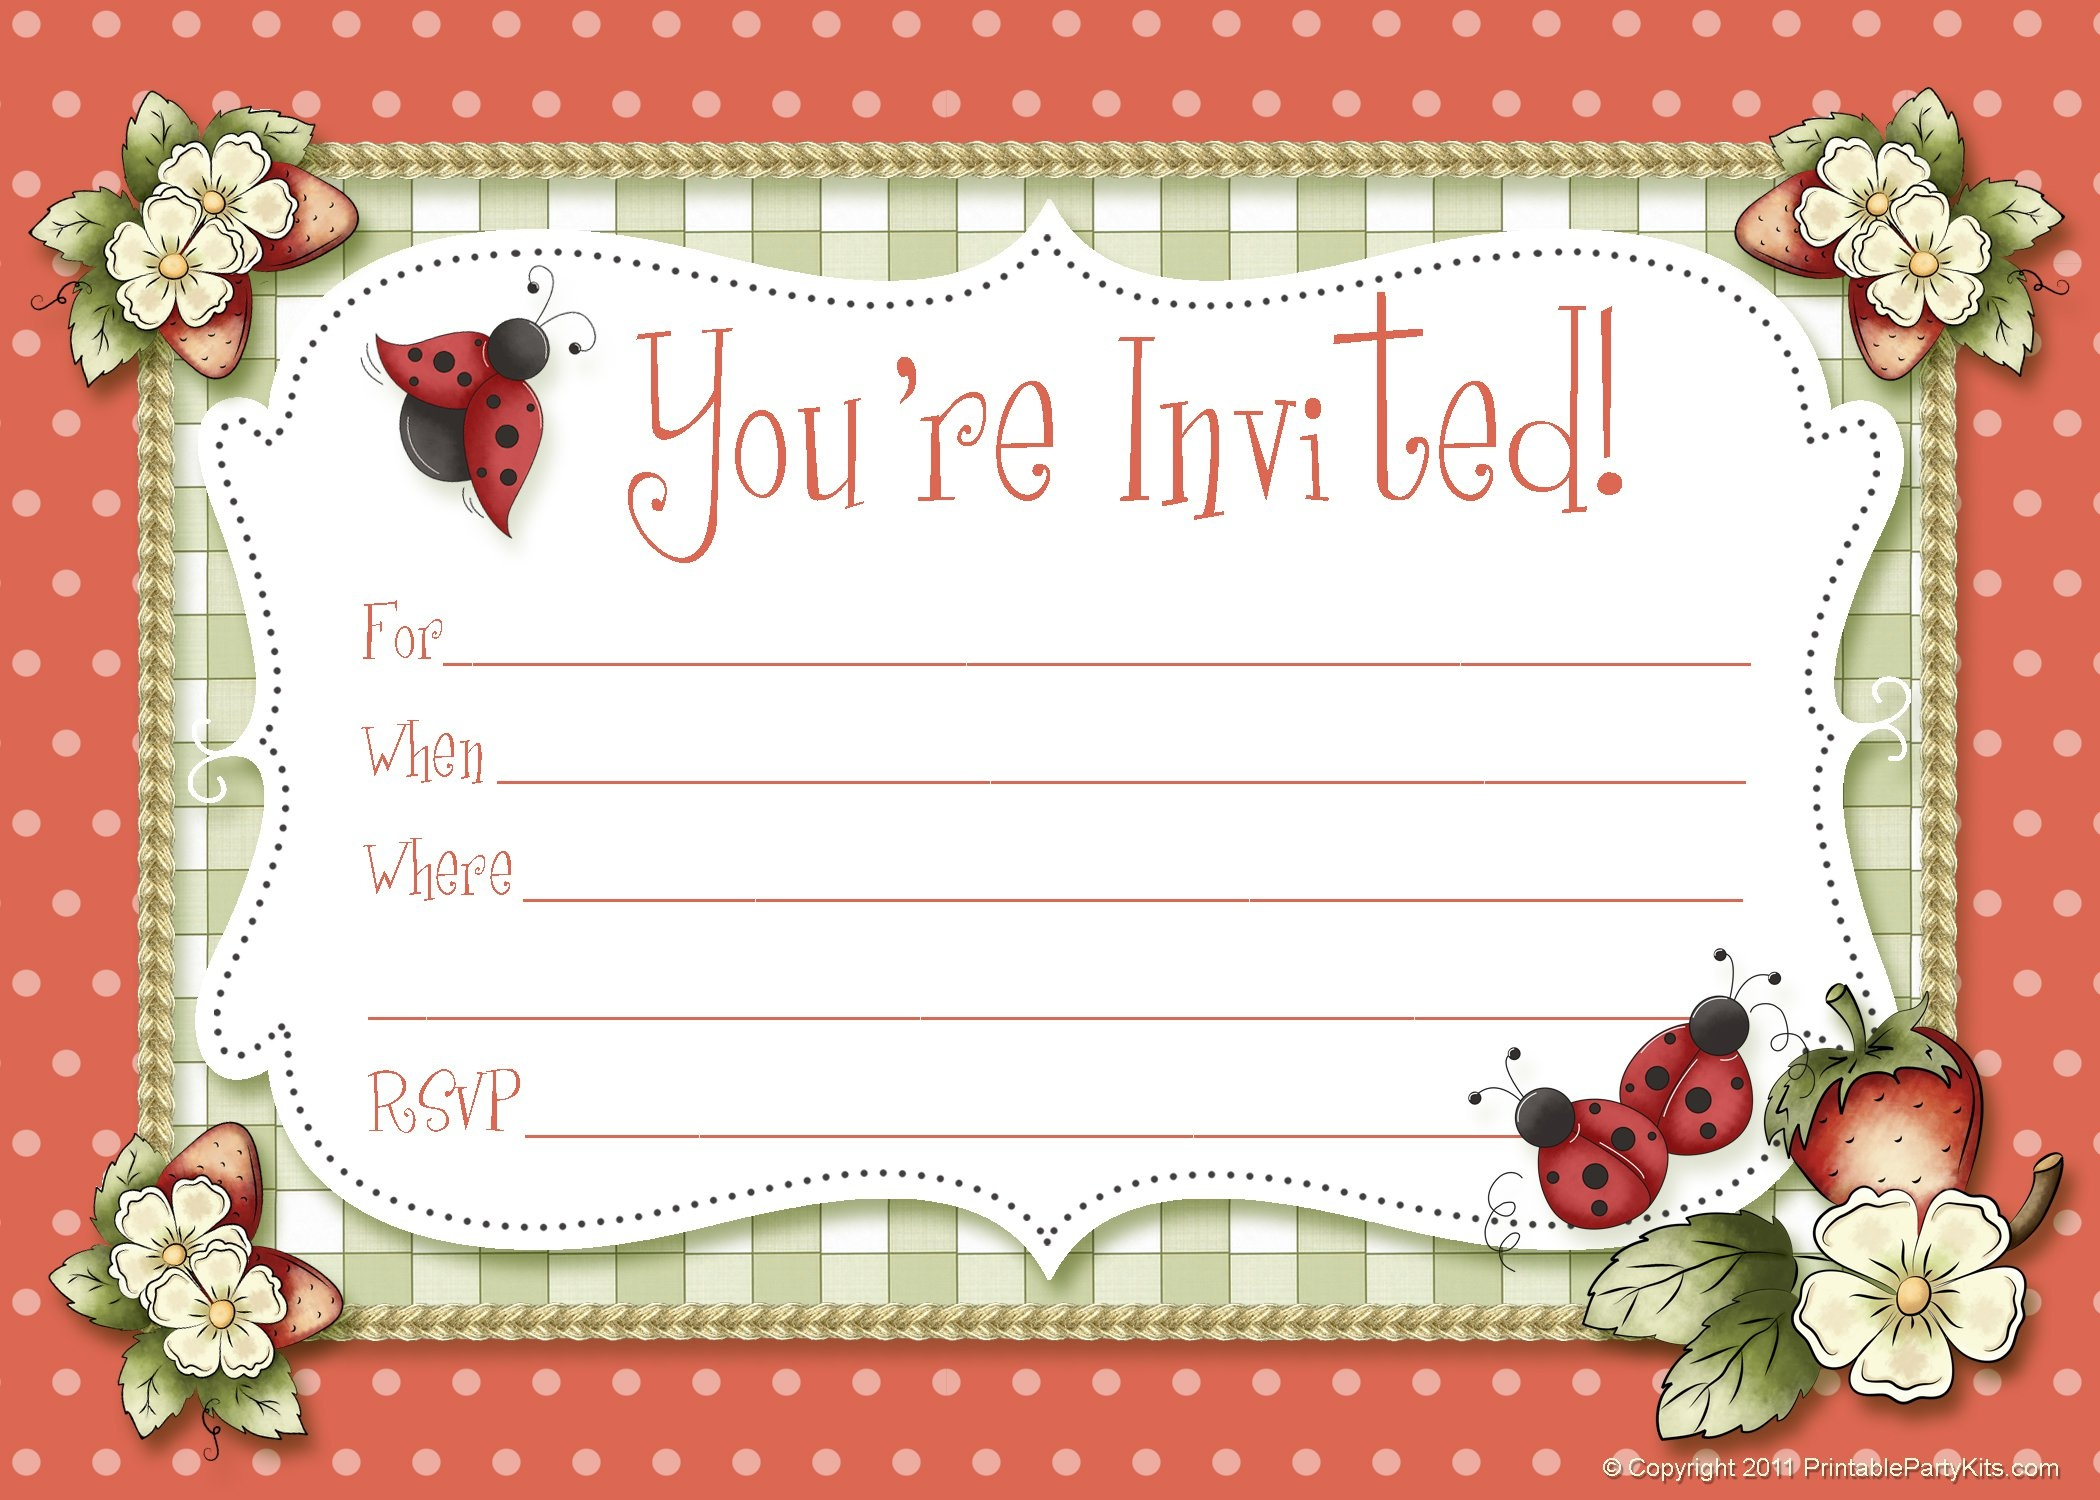 Free Invitation Card Maker Printable - Party Invitation Collection - Make Printable Party Invitations Online Free